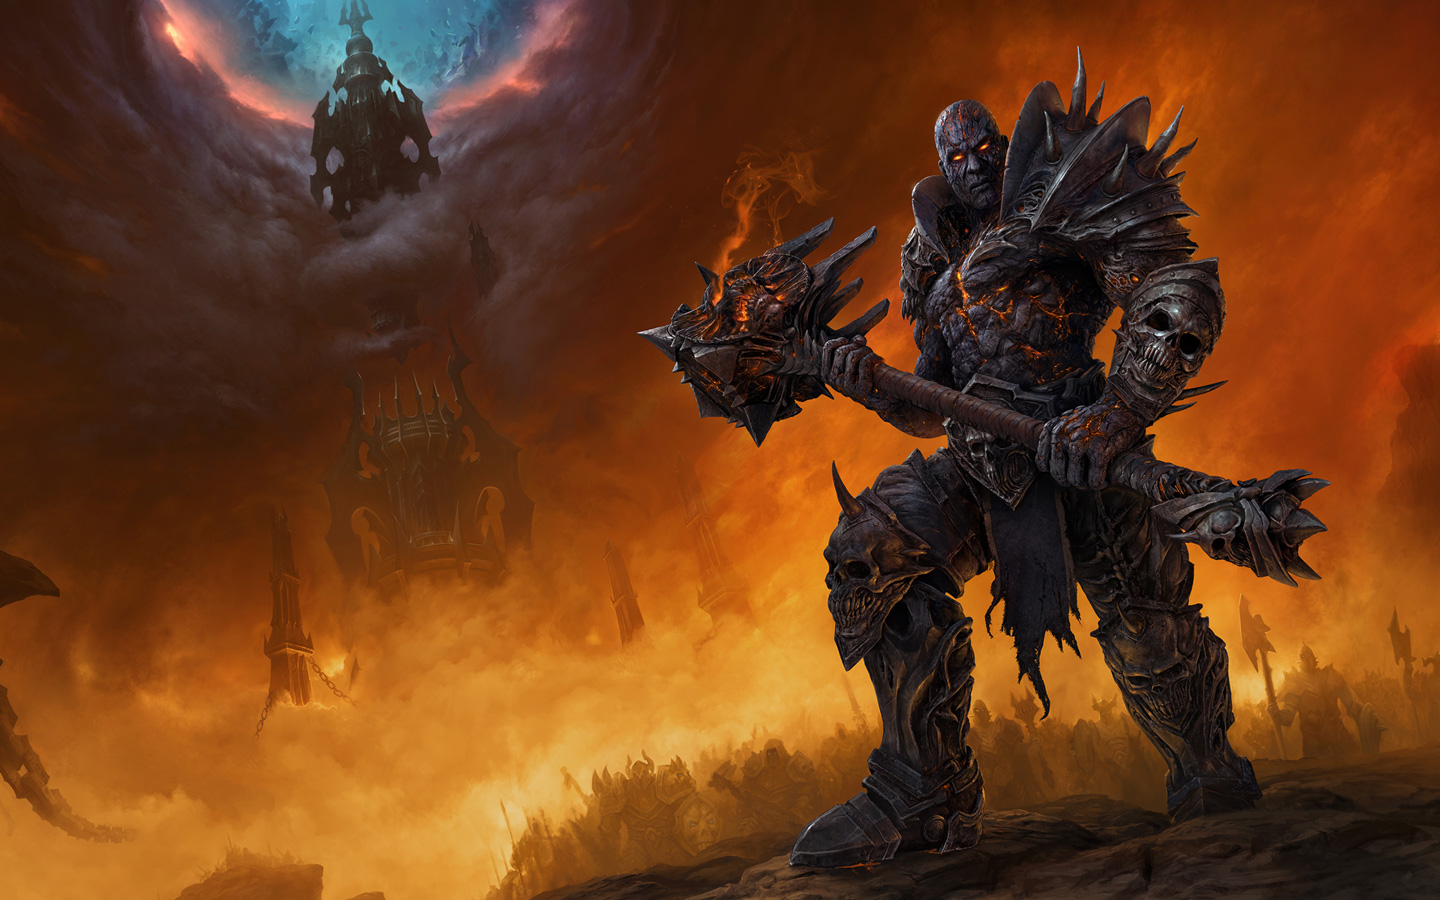 Free World of Warcraft Wallpaper in 1440x900